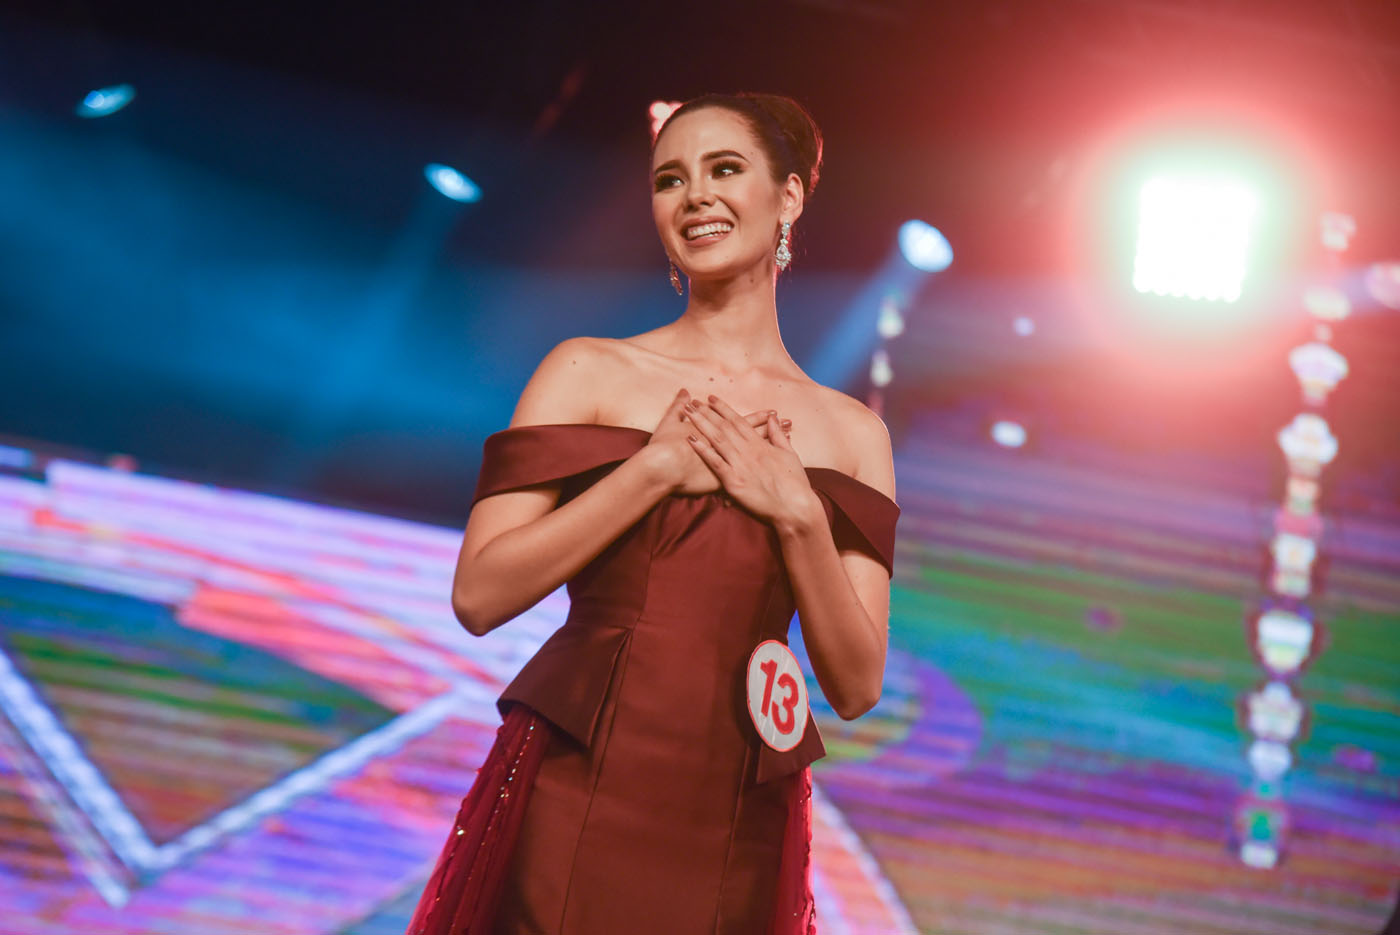 Philippines' Catriono Elisa Gray crowned Miss Universe 2018